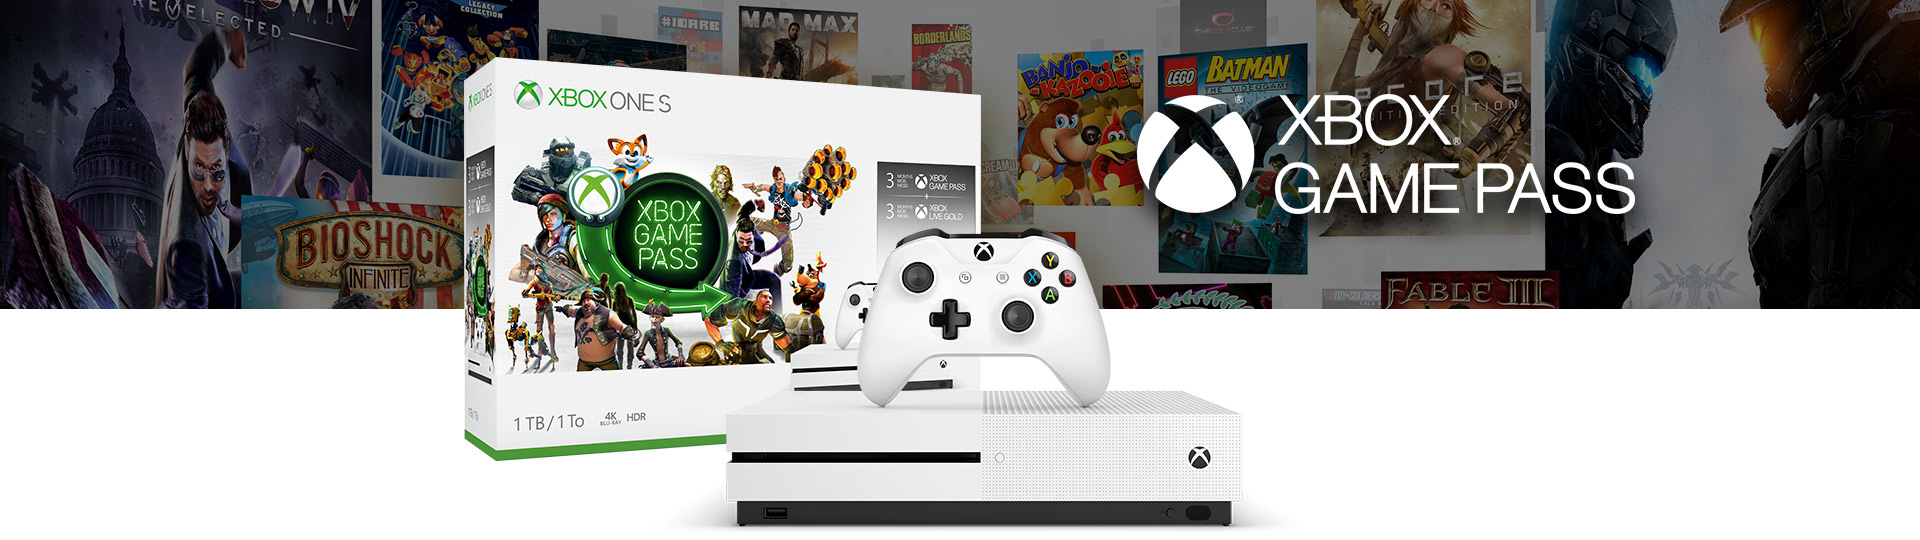 Xbox One S Starter Bundle (1 TB)